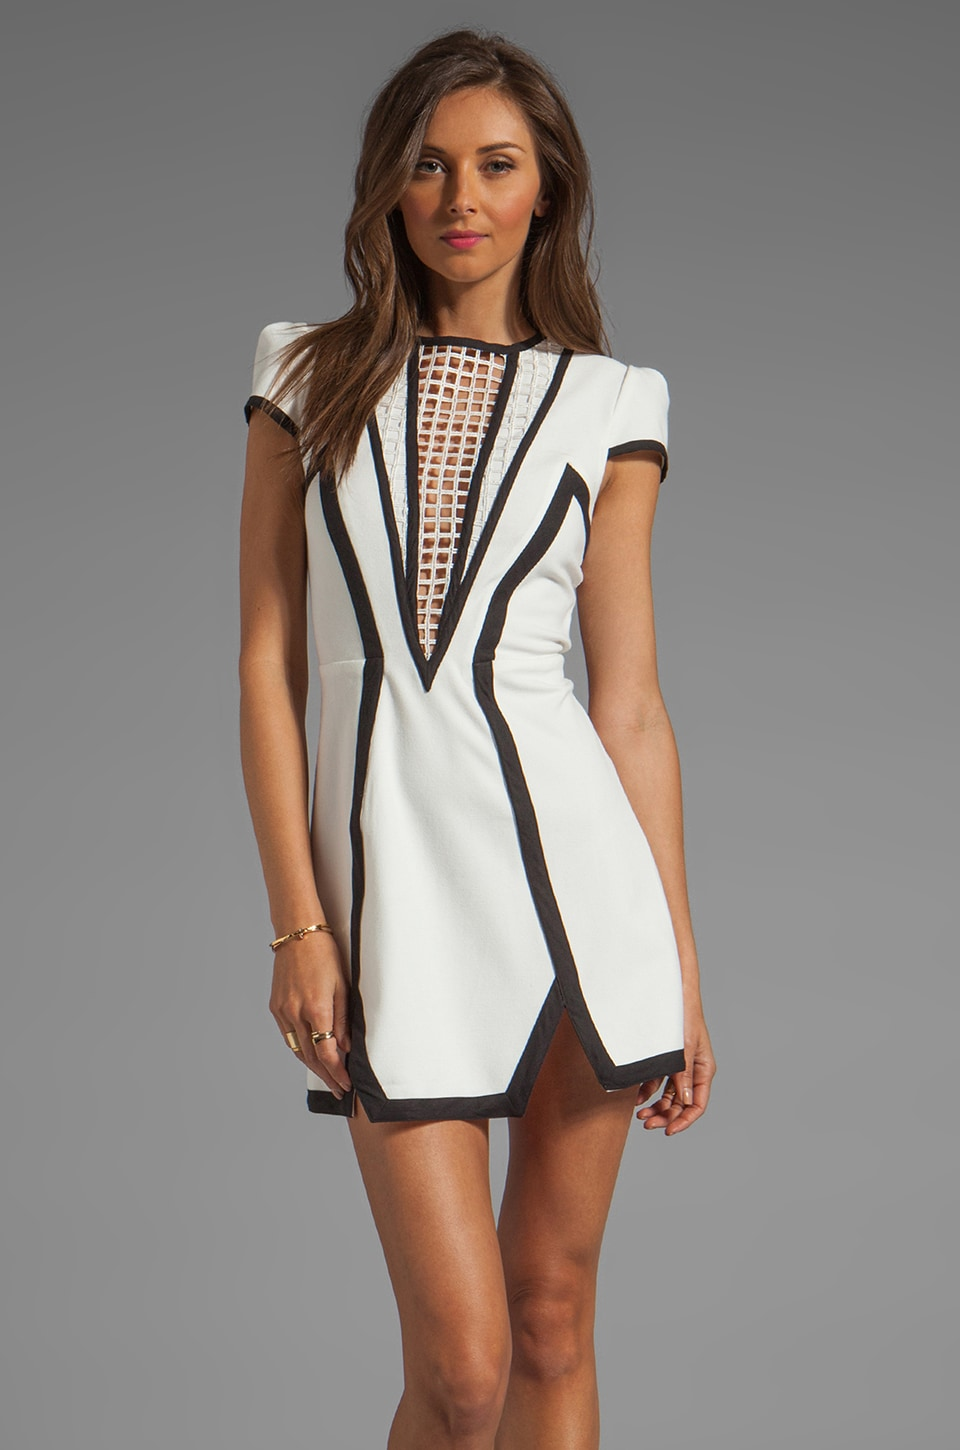 Finders Keepers By the Way Dress in Ivory/Black